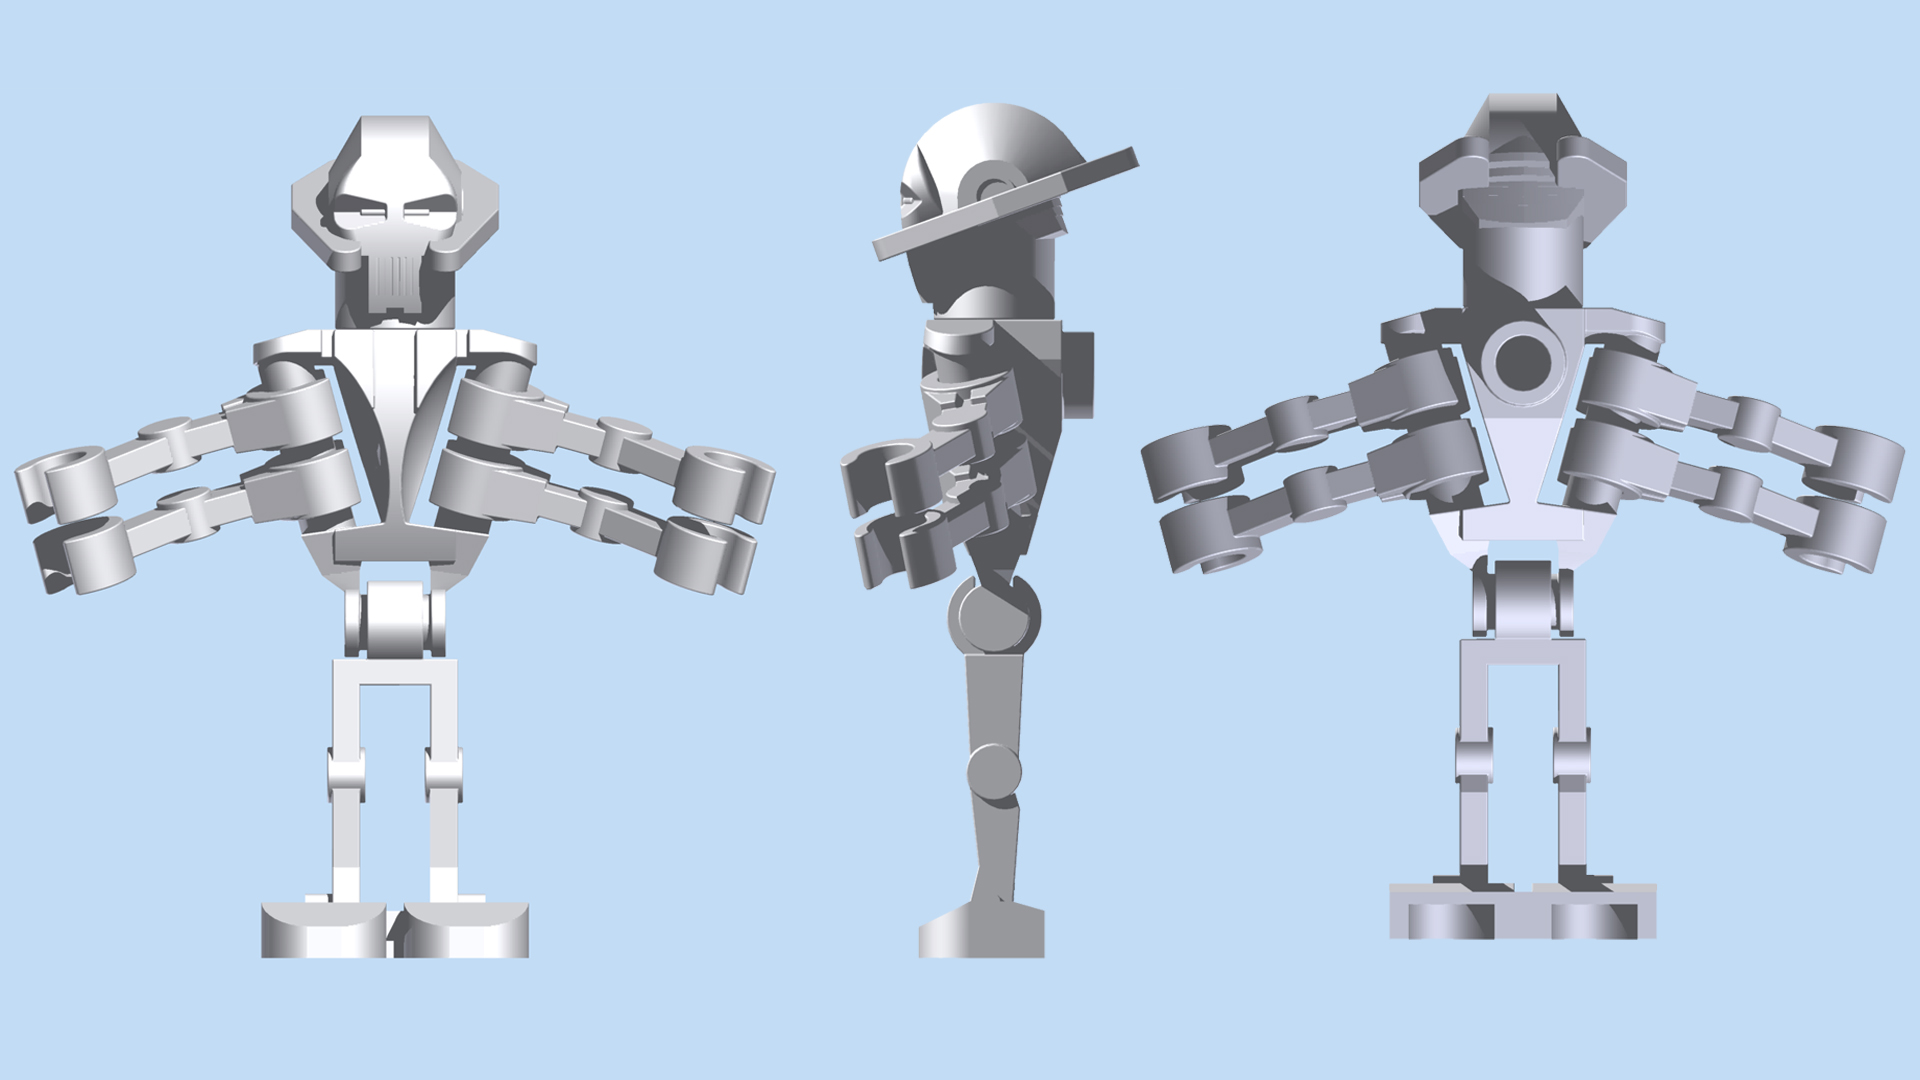 LEGO General Grievous by mingles on DeviantArt